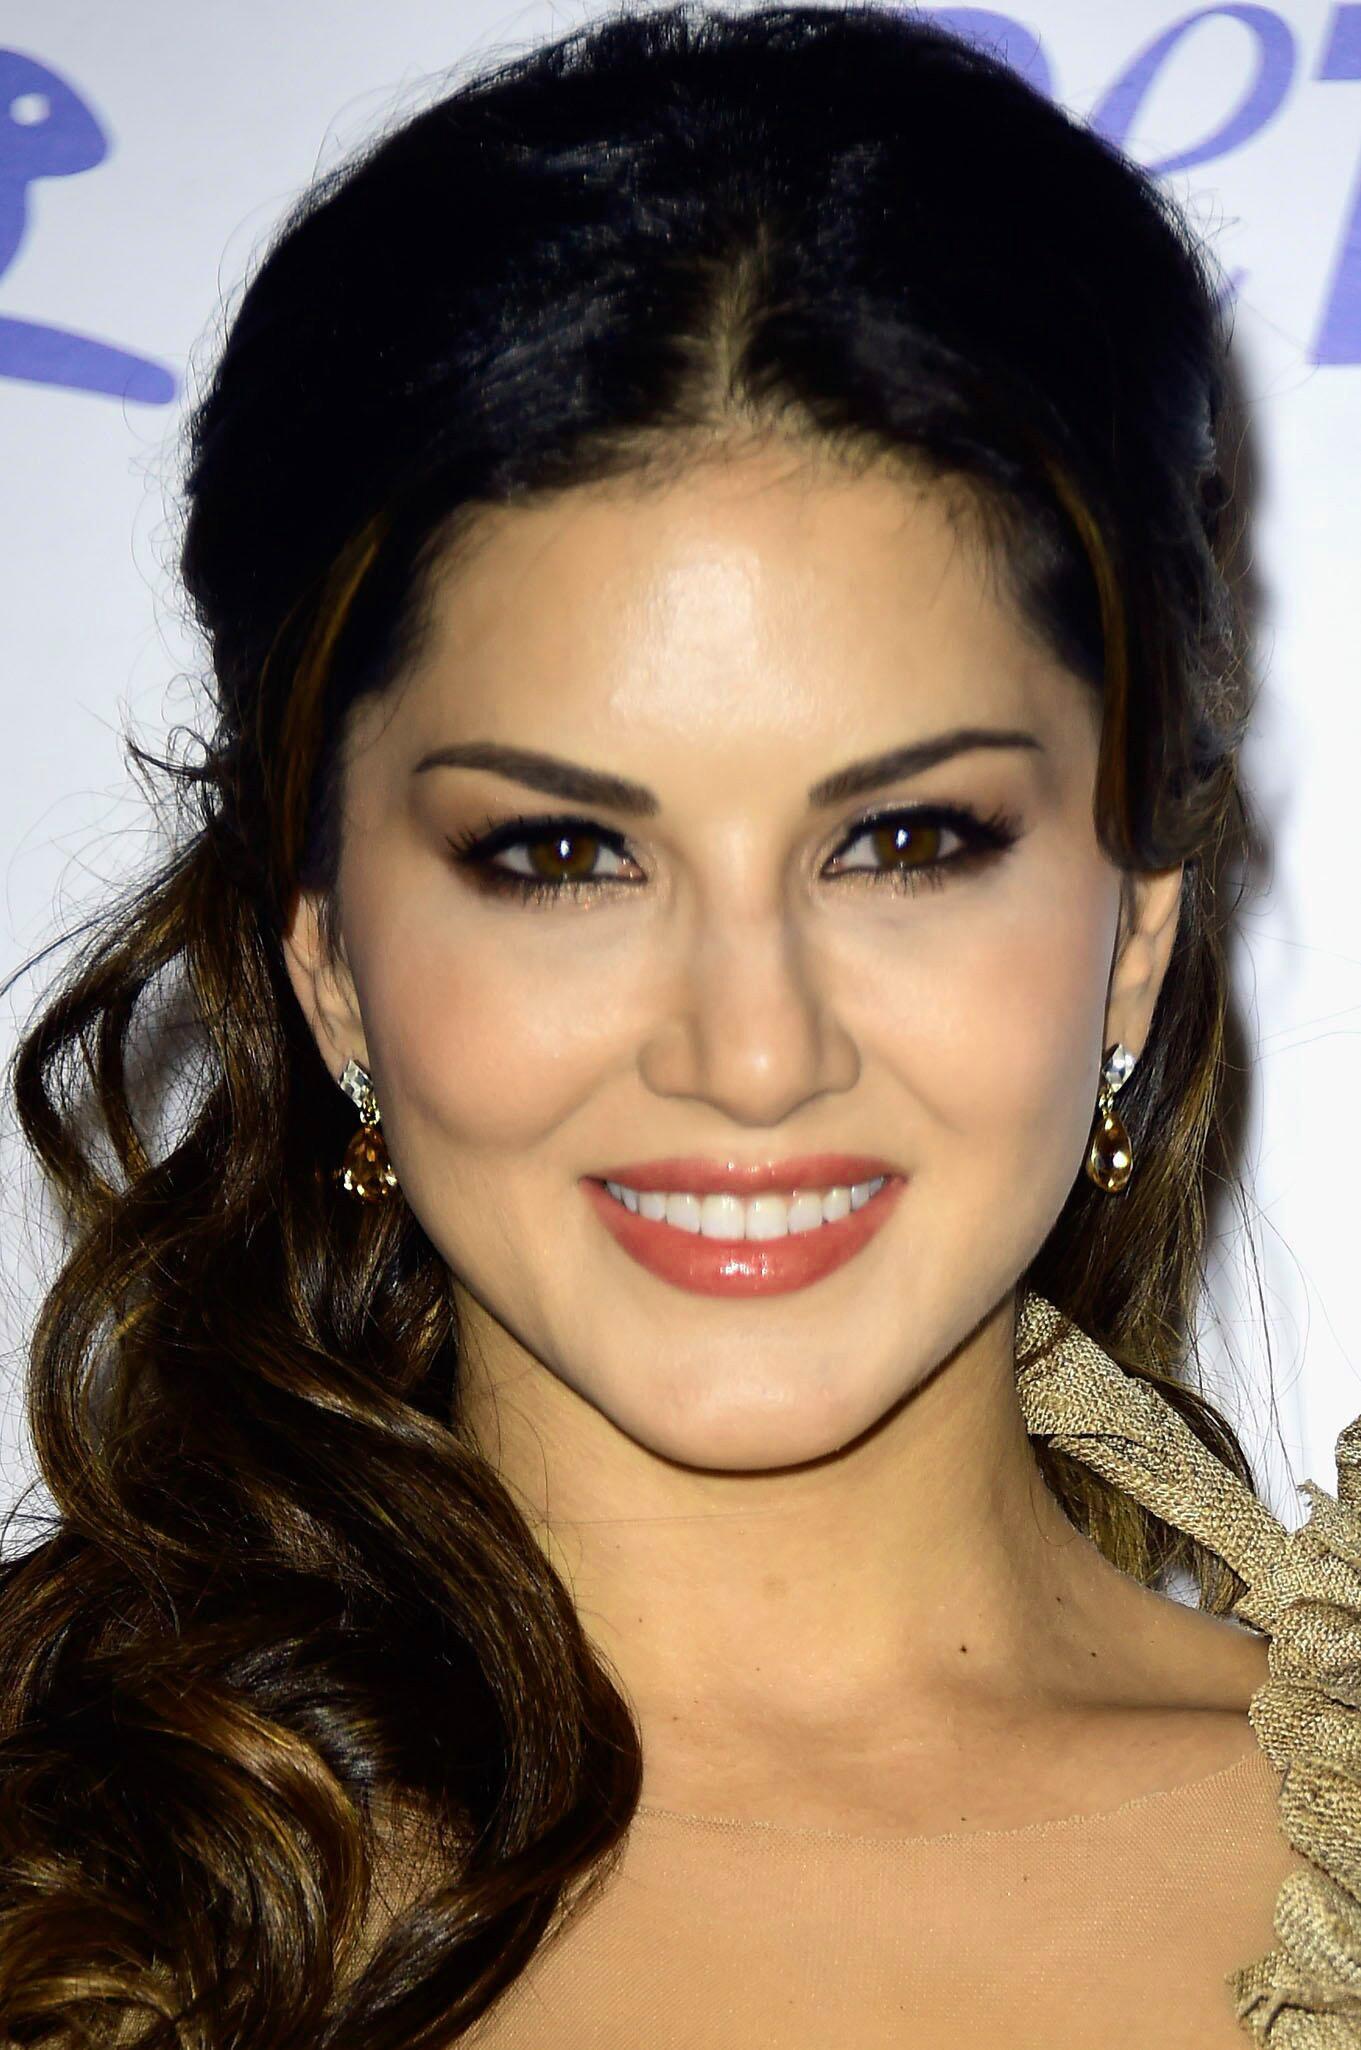 SUNNY LEONE IMAGES WALLPAPER FREE HD